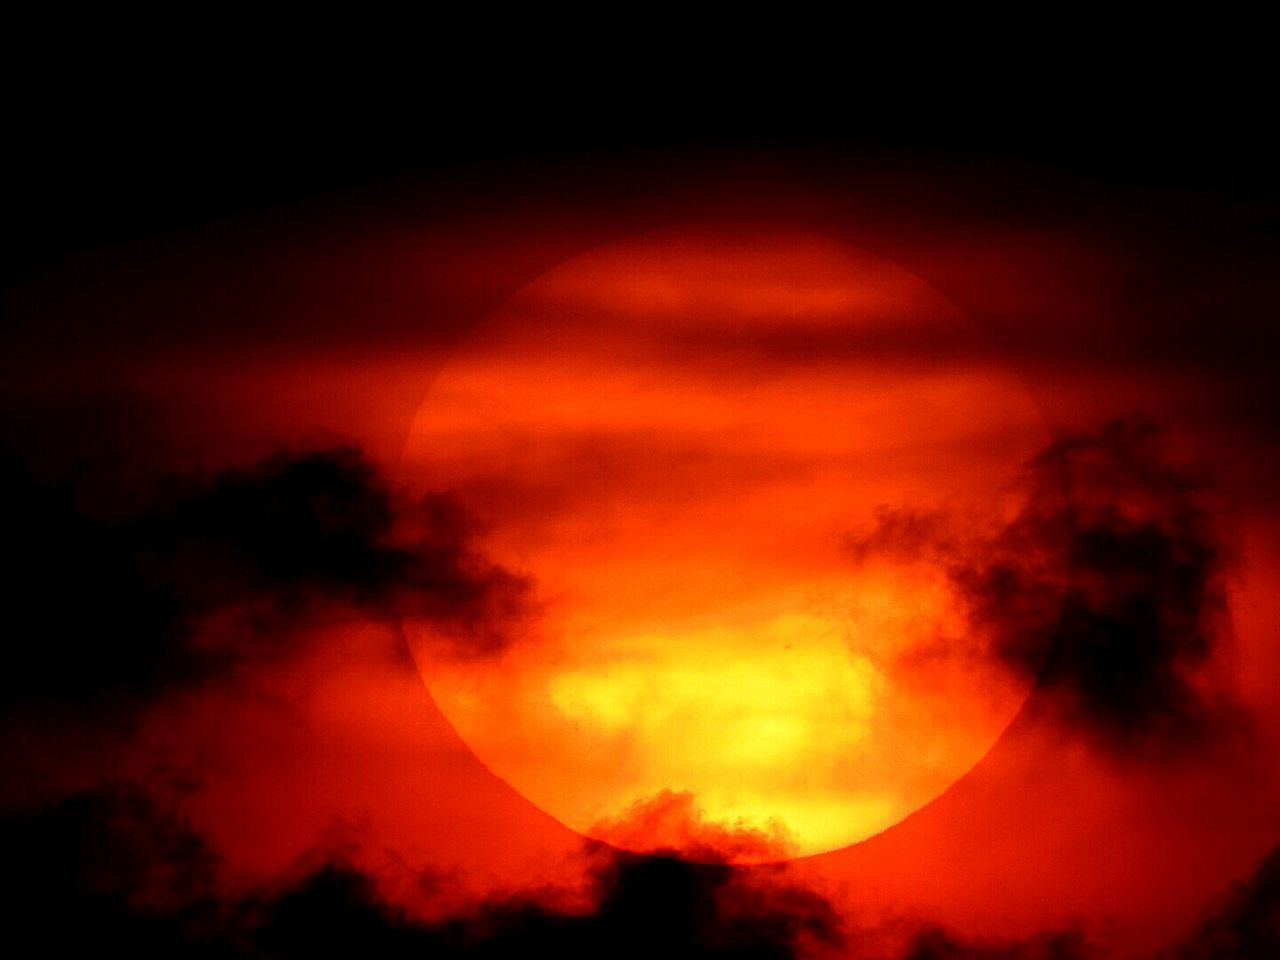 Orange Color Beauty In Nature Sky Red Nature Scenics Silhouette Sunset Cloud - Sky No People Tranquility Outdoors Night Power In Nature Astronomy Solar Eclipse Sun ☀ TelescopicZoom Nikonphotography Celestialbody Eveningshot Nikon Coolpix P900 Geography EyeEm Best Shot - Astronomy